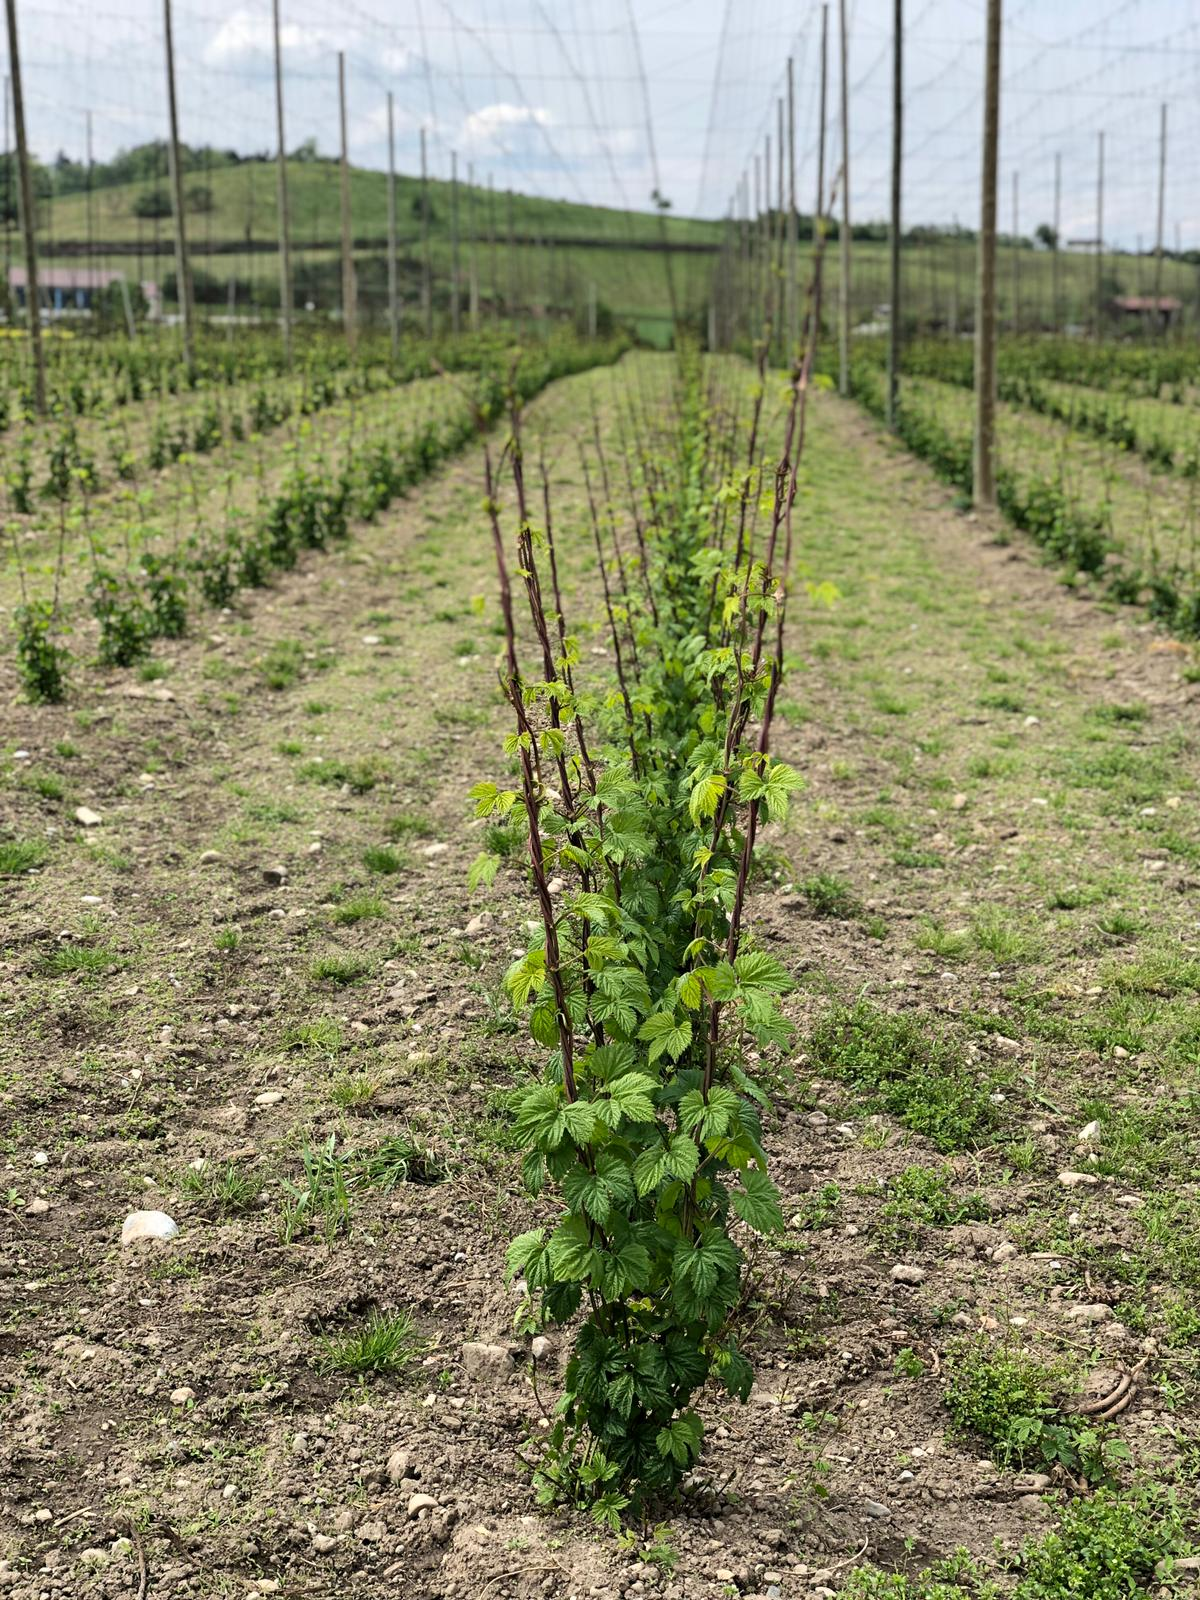 You are currently viewing Hopfentropfenhopfen am Freitag, 3. Mai 2019